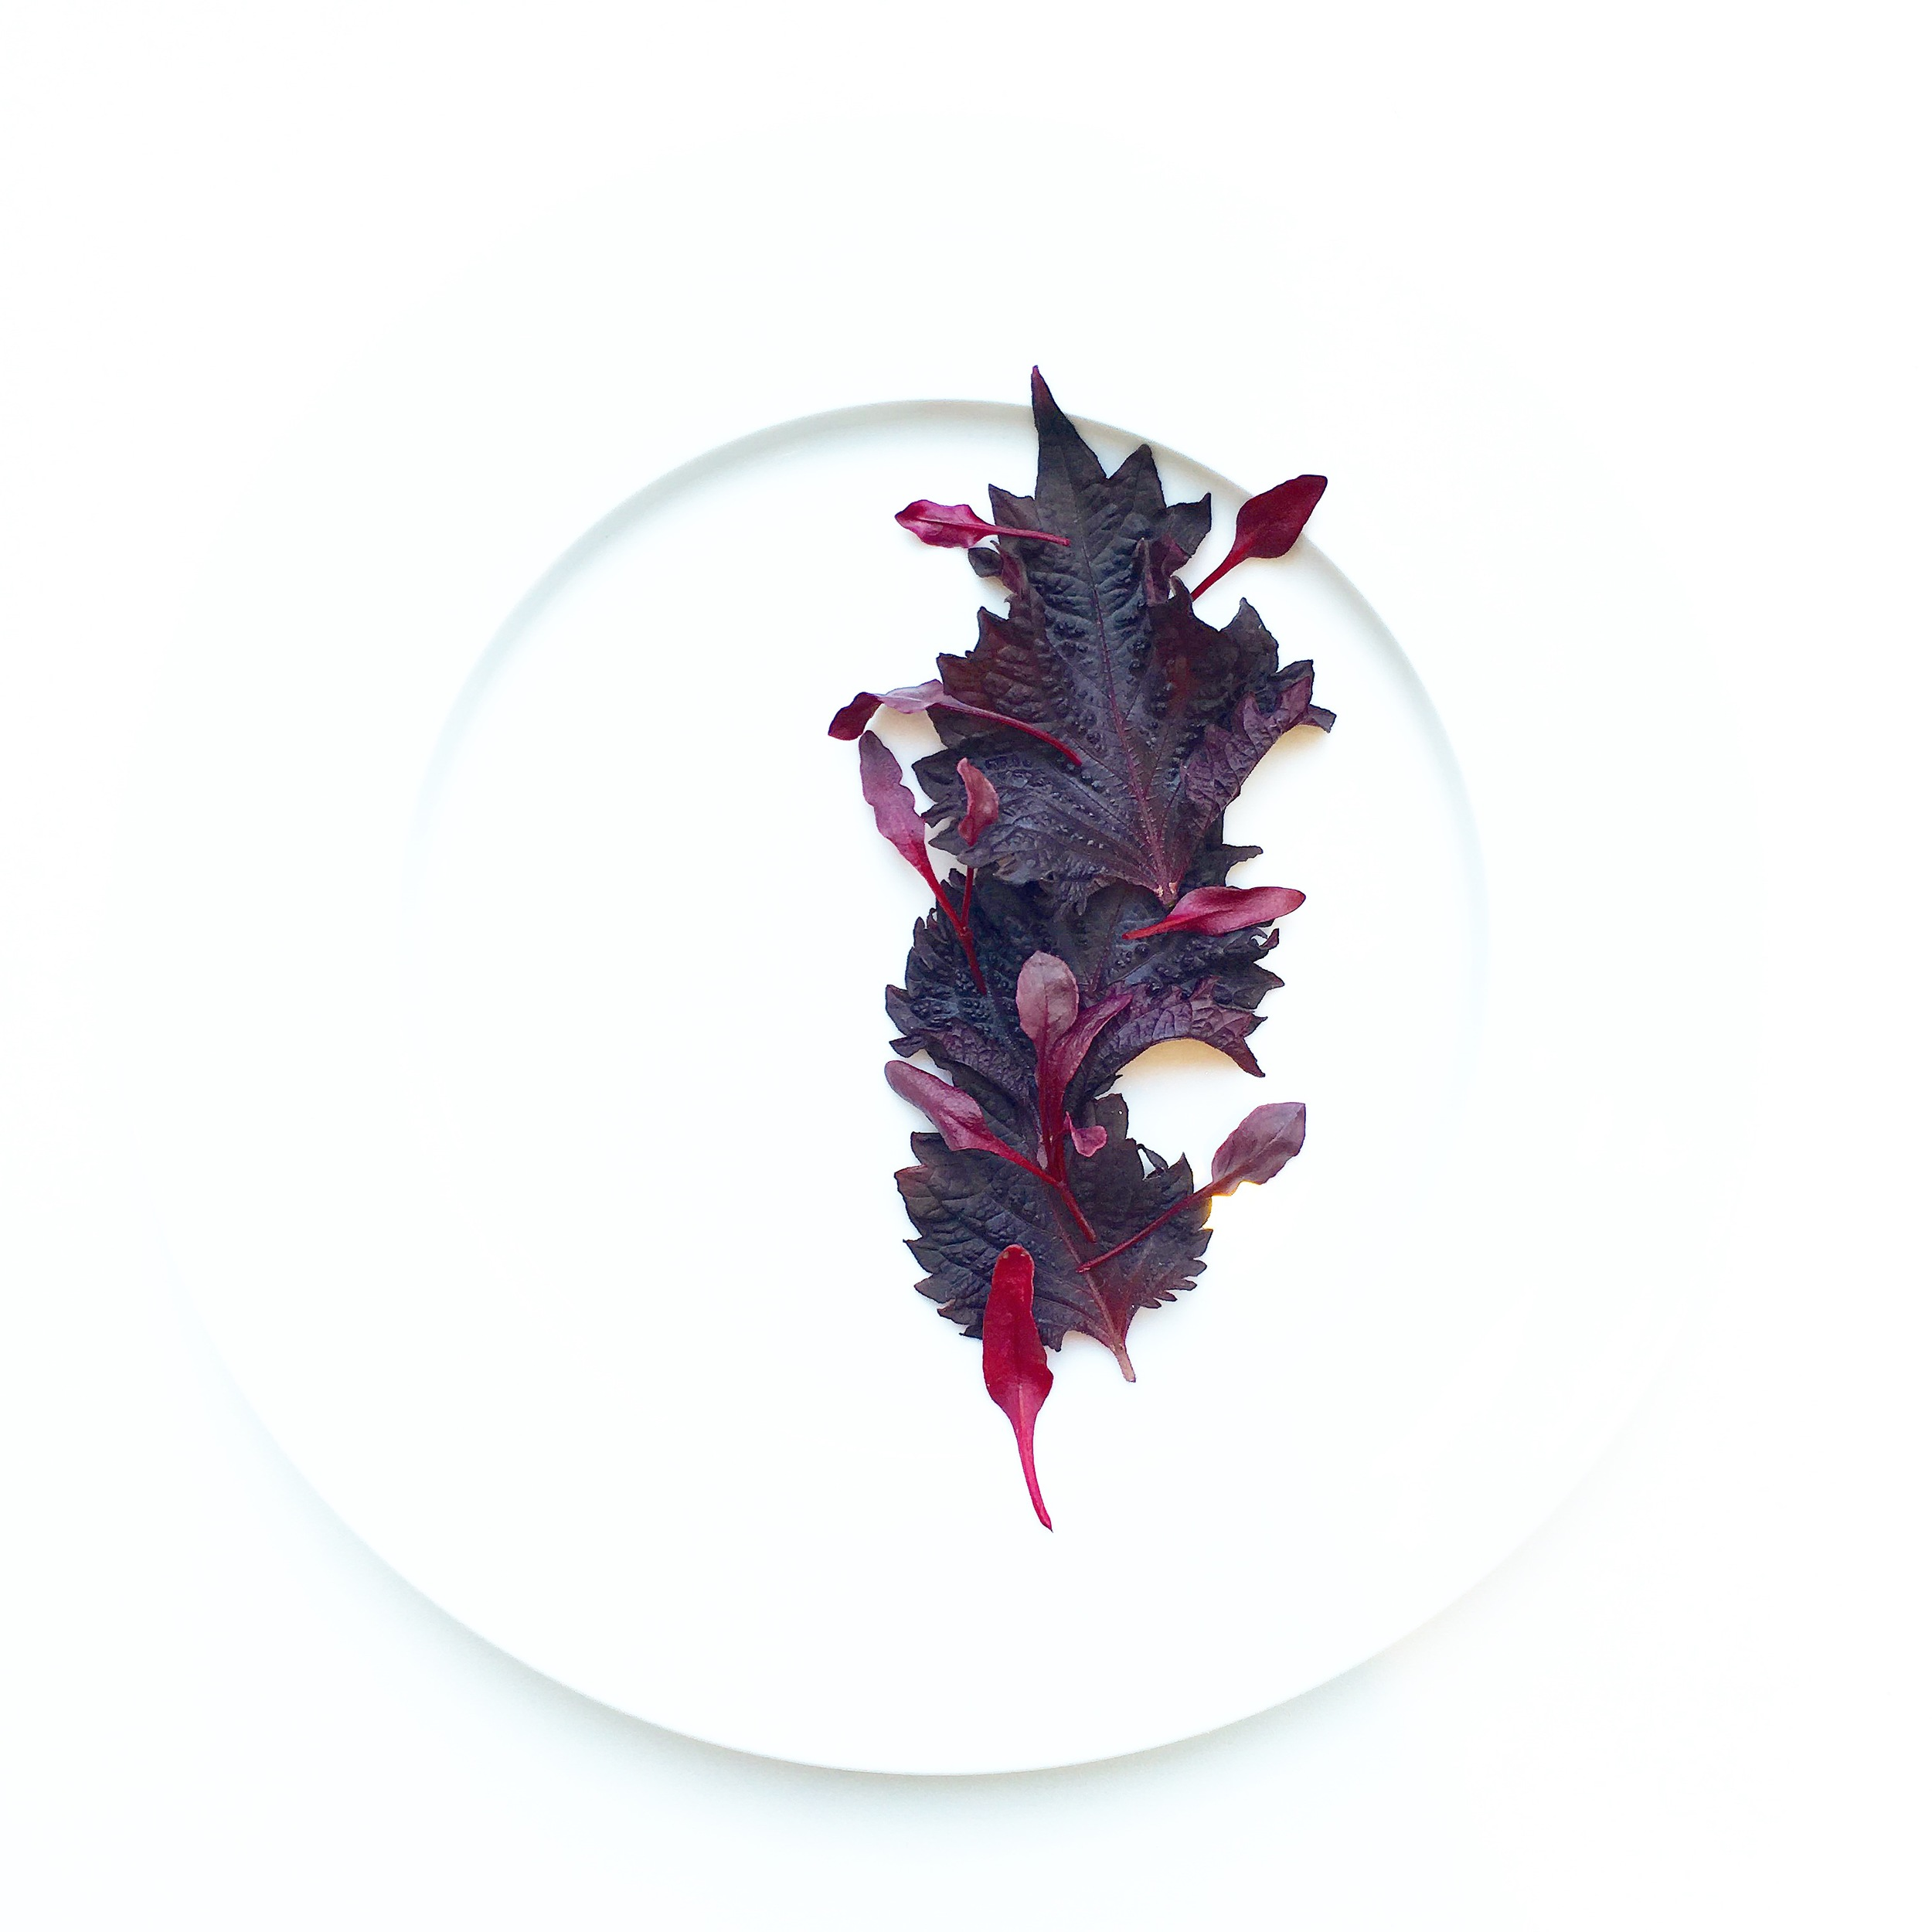 Red Shiso, Micro Beets. Grown at Farm.One.